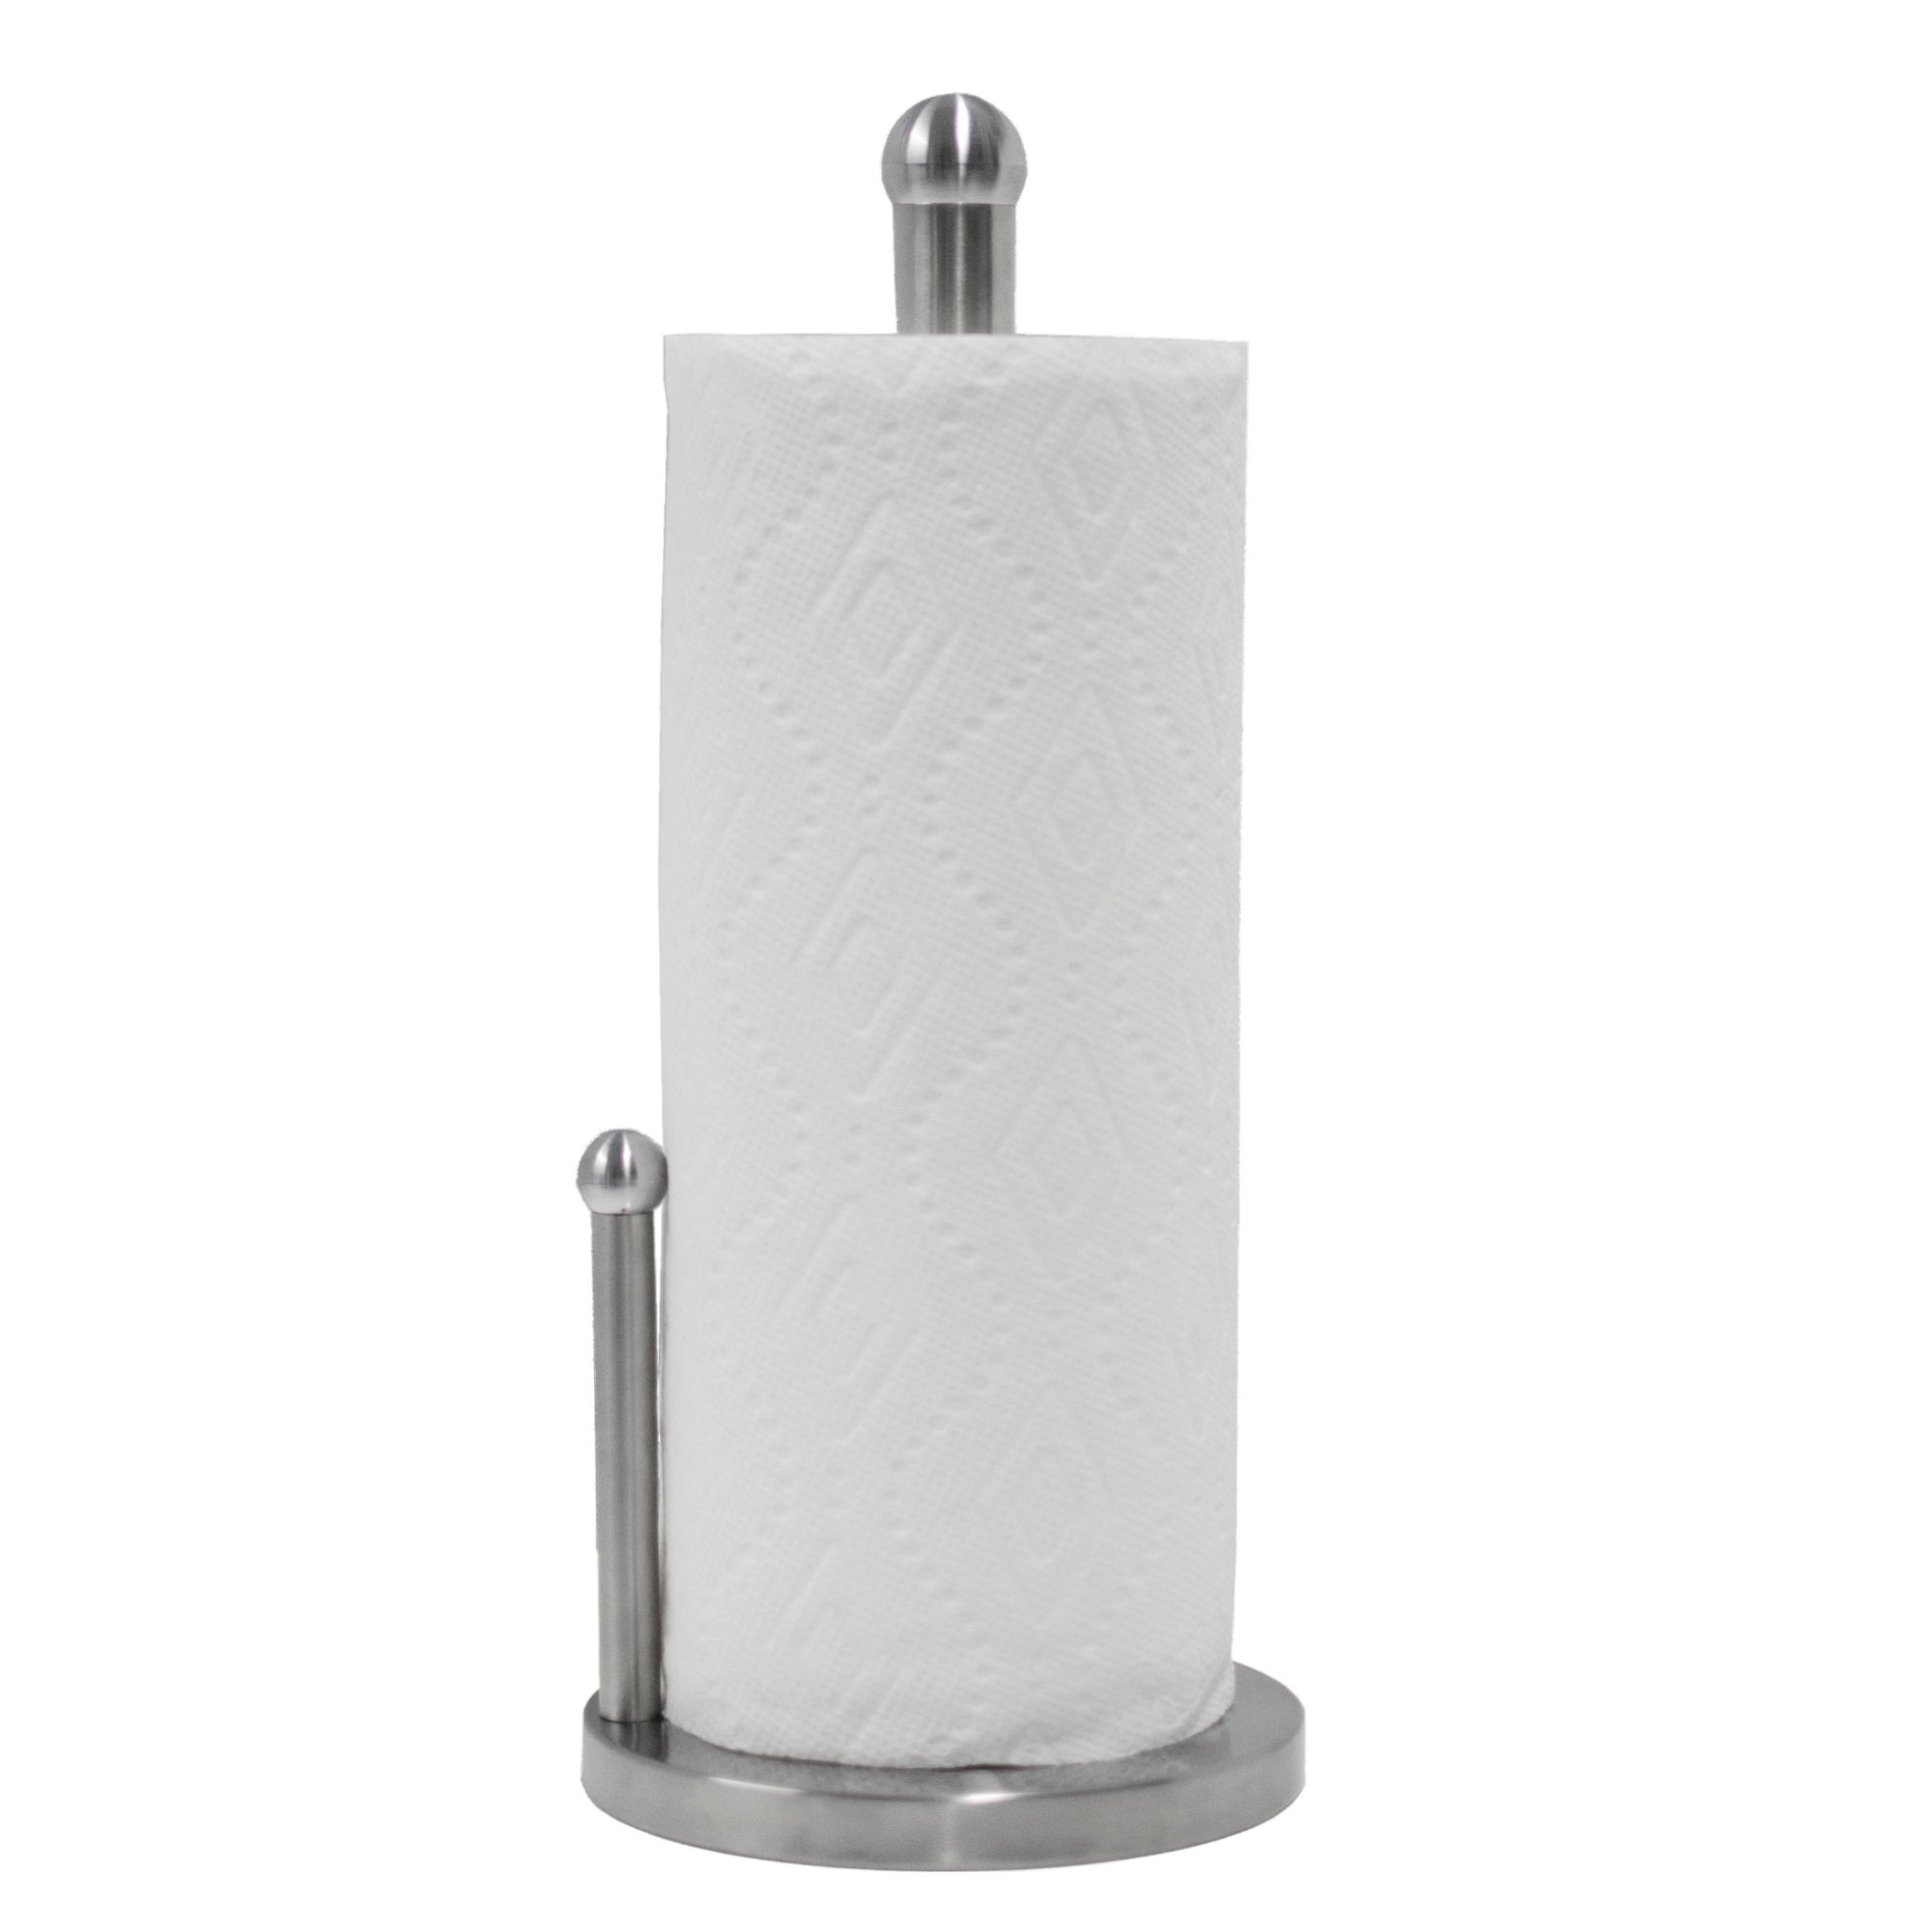 Oasis Collection Double Pole Stainless Steel Paper Towel Holder With Anti Slip Pad Base PH029861